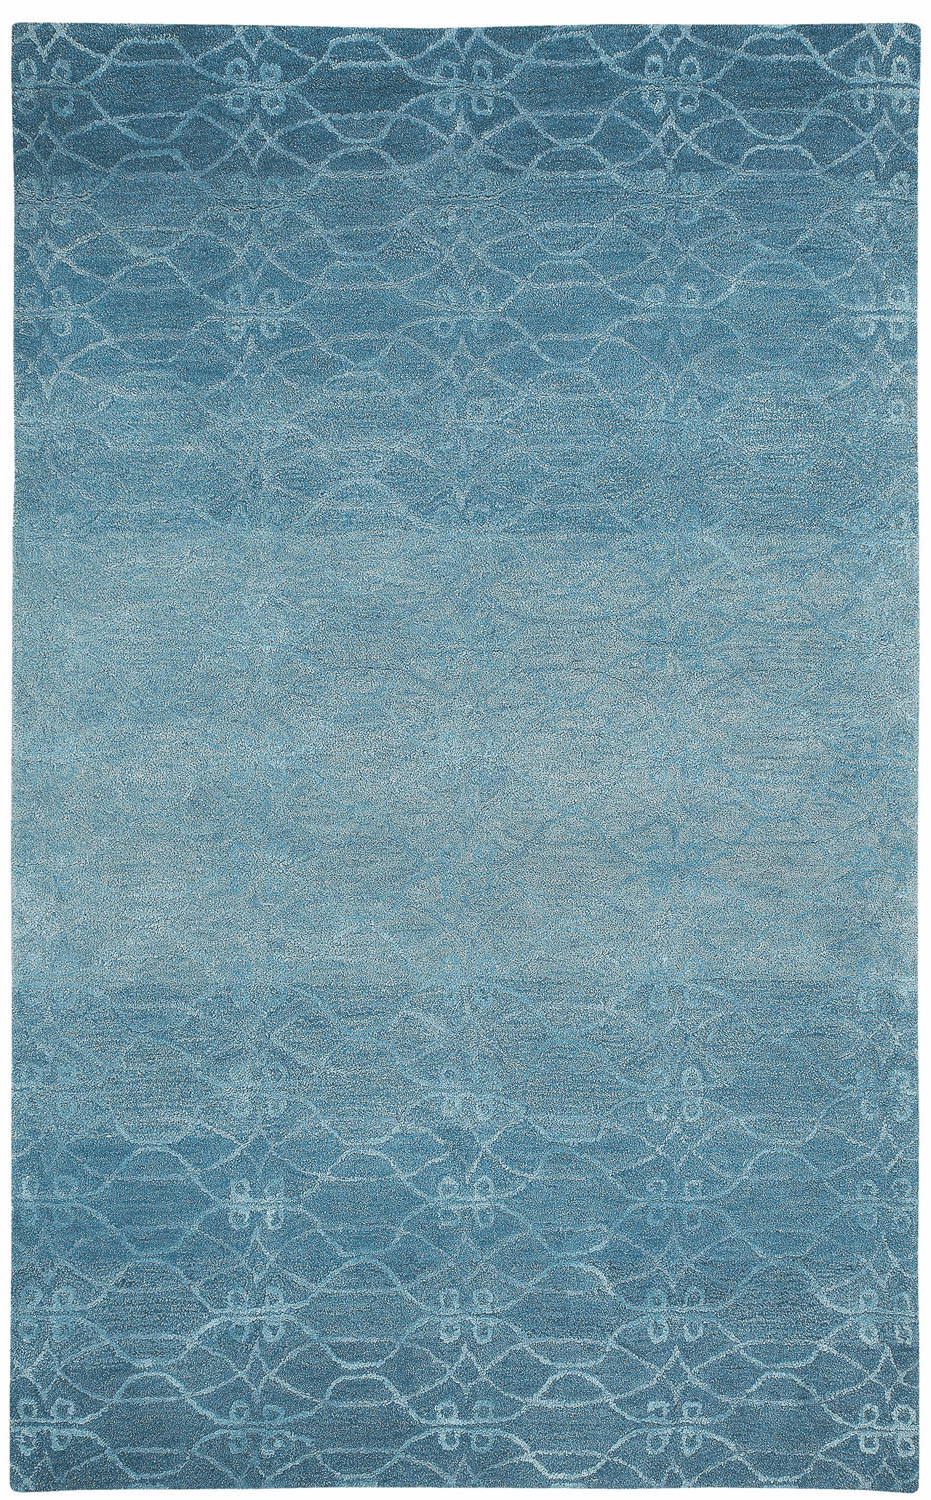 Hand Tufted Ocean Blue Rug